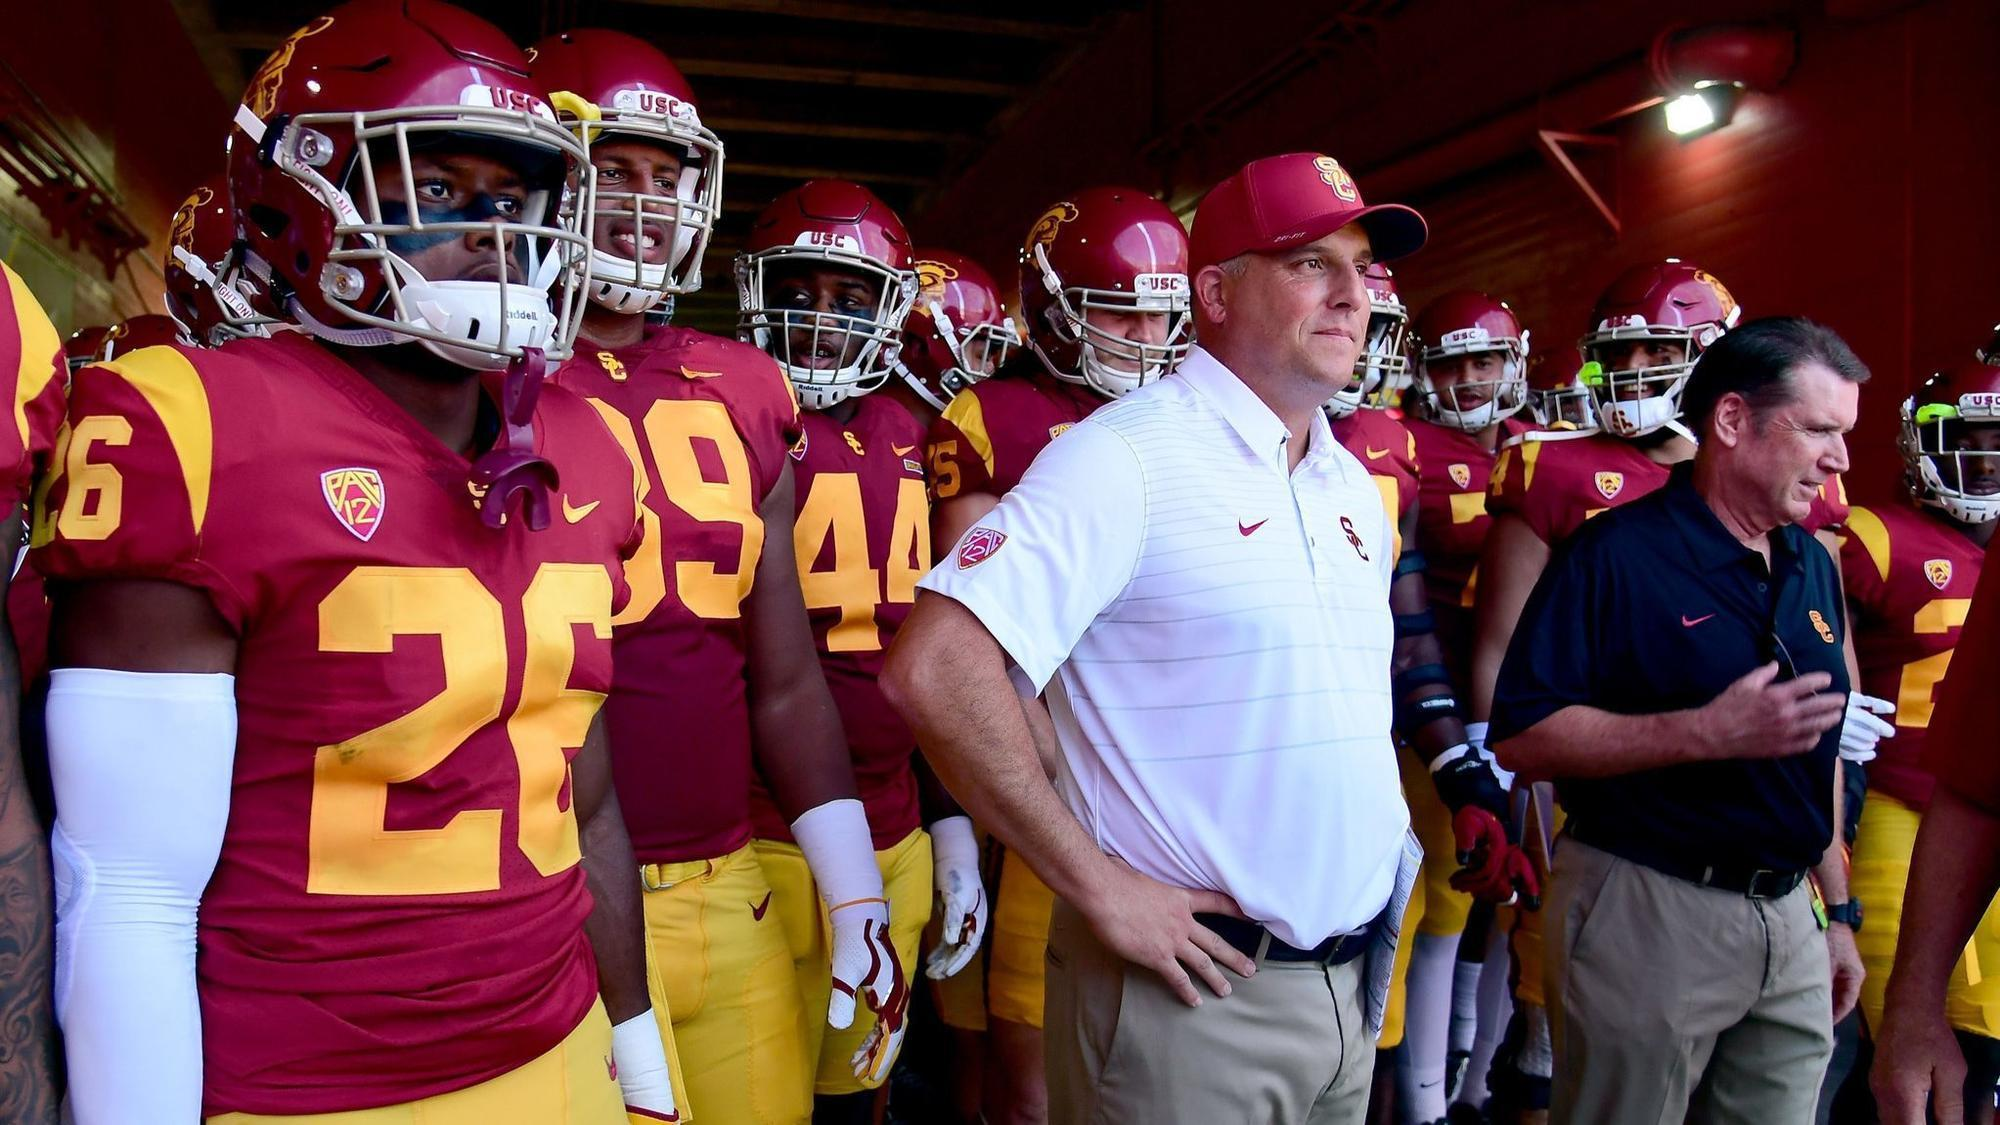 USC is No. 7 in 2018 preseason college football rankings